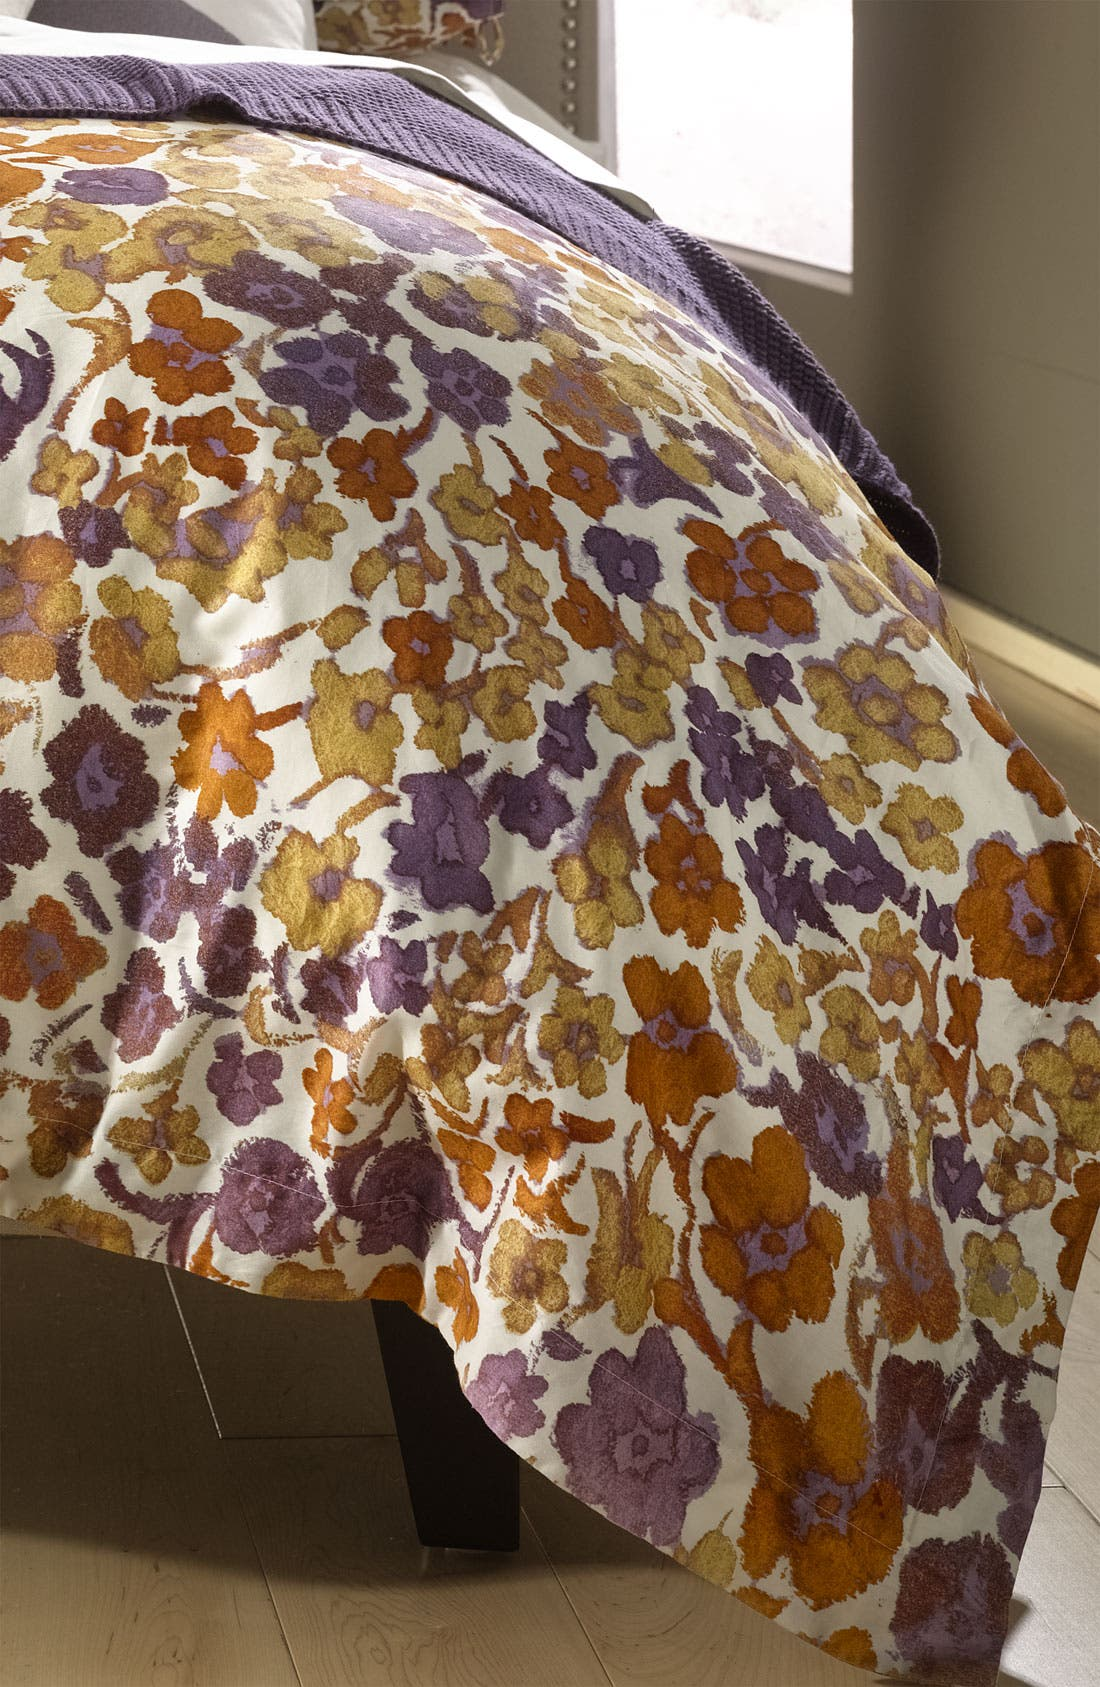 Alternate Image 1 Selected - Diane von Furstenberg 'Spanish Leopard' 300 Thread Count Duvet Cover